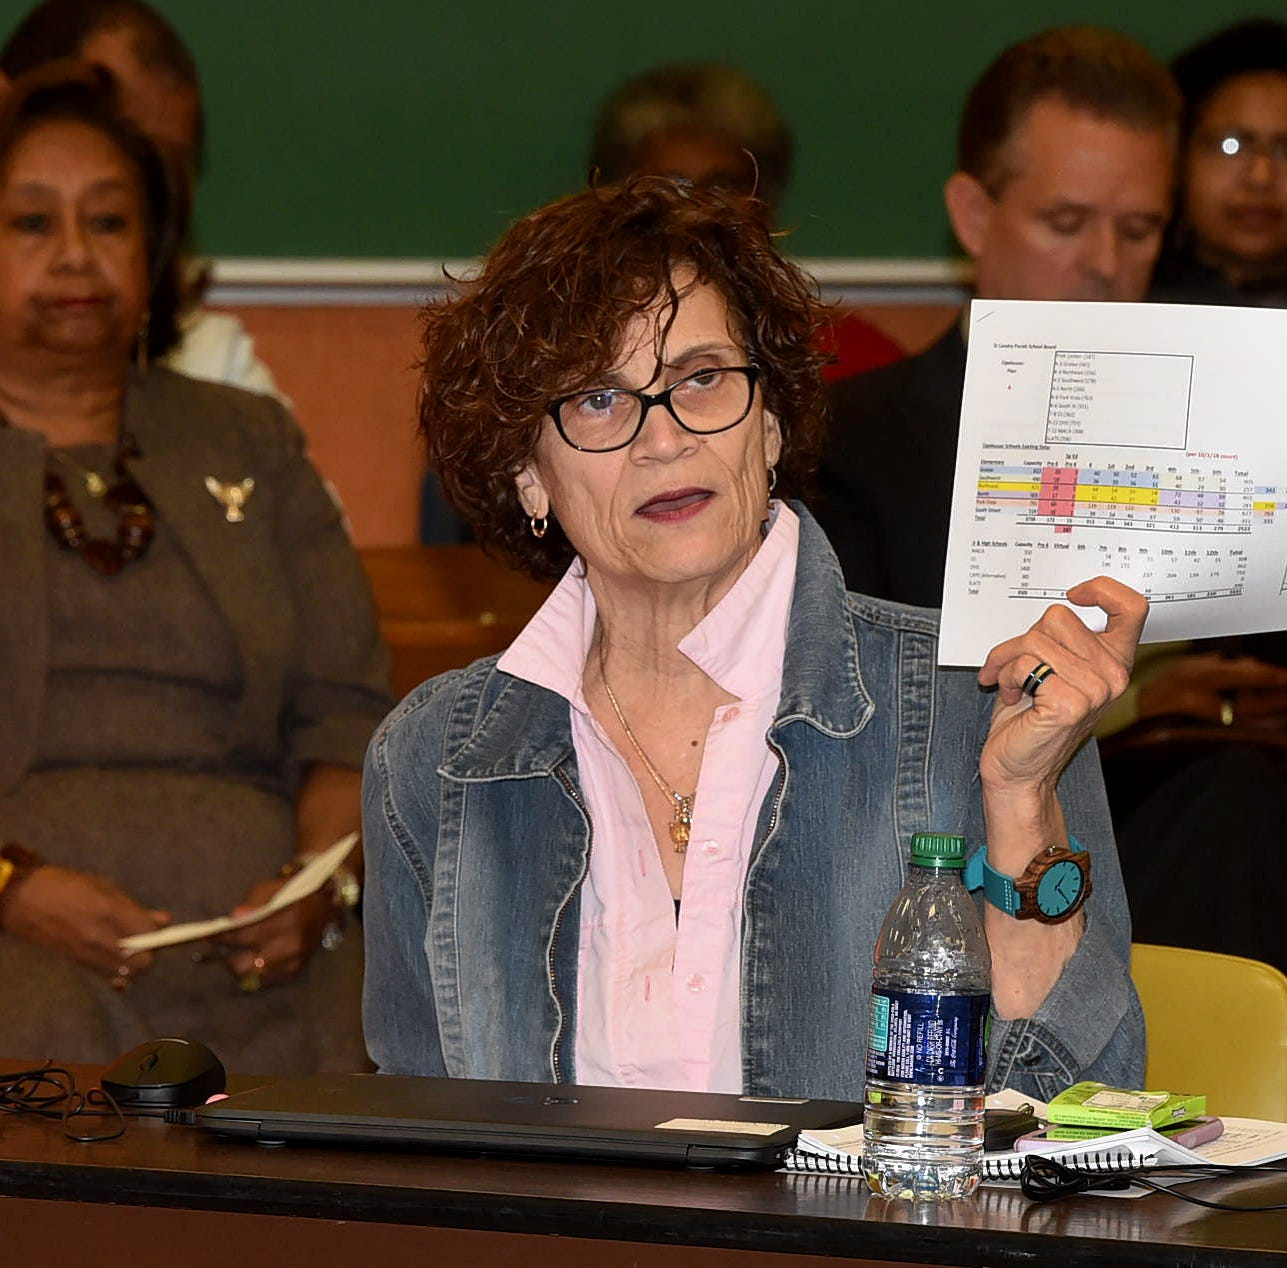 School board contends with budget concerns, test scores